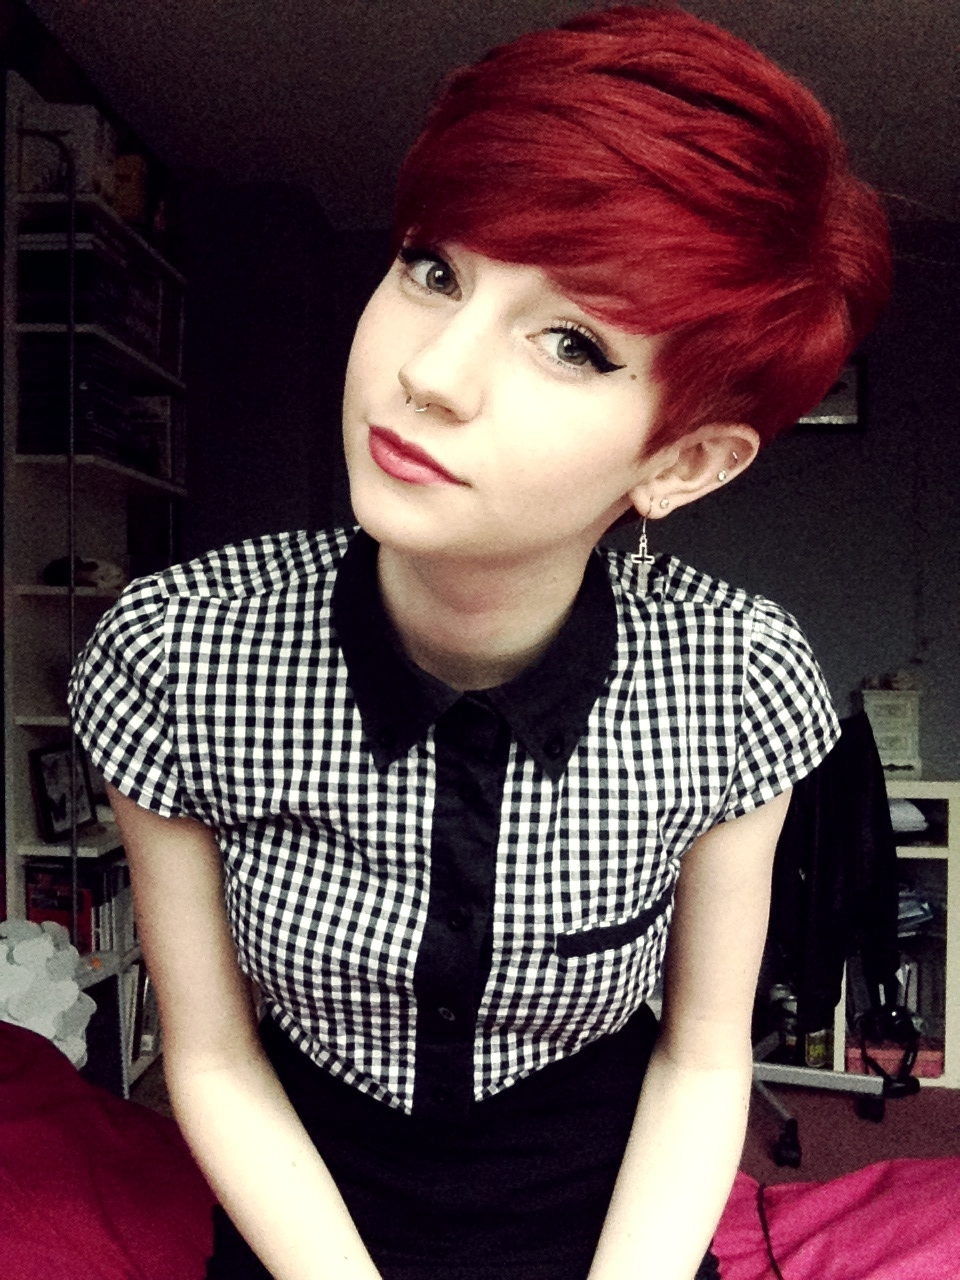 Fashion style Red tumblr cut pixie photo for lady